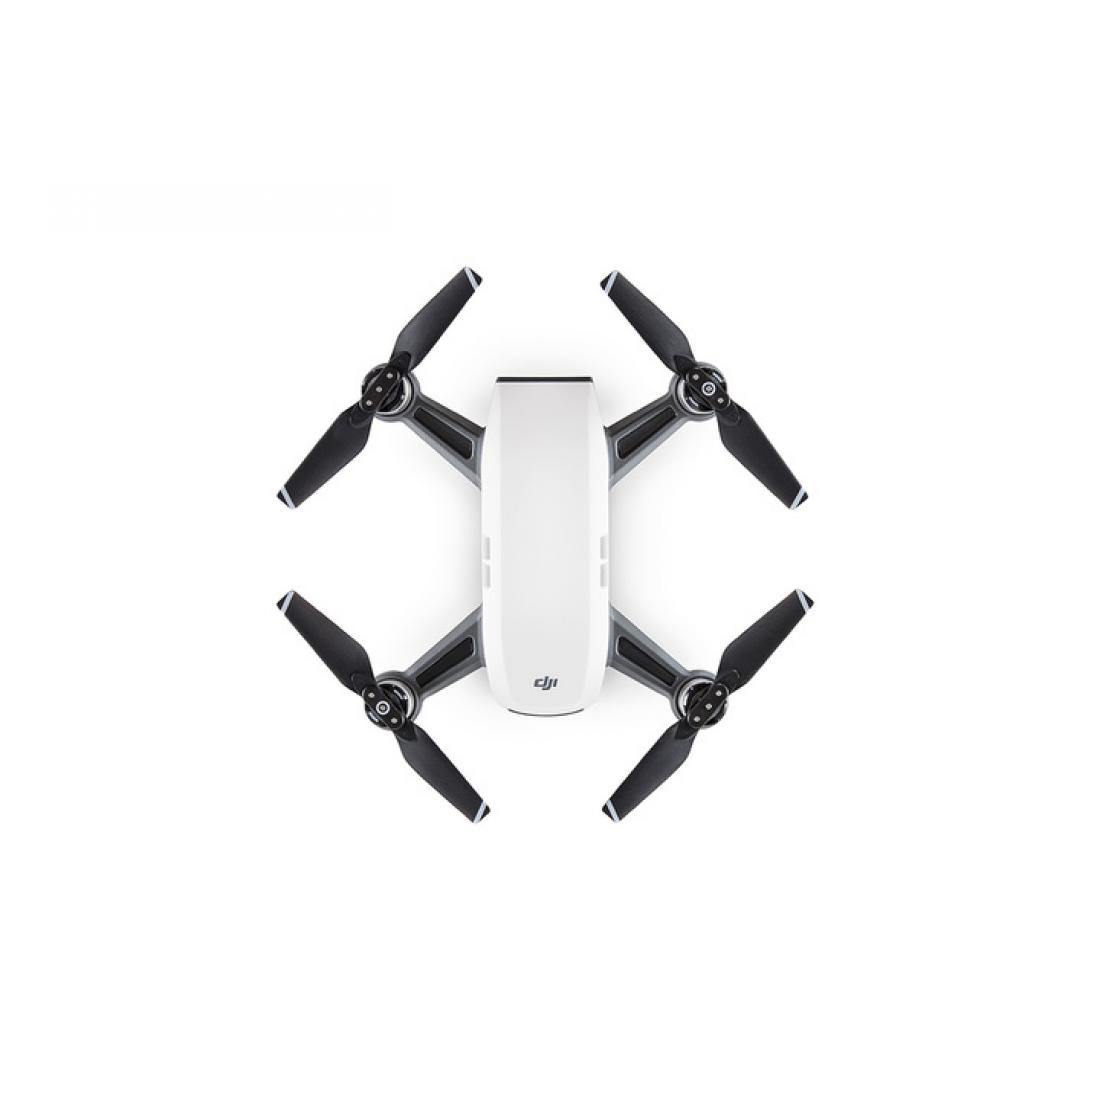 Spark Fly More Combo (Alpine White)- DJI The World Leader In Camera Drones